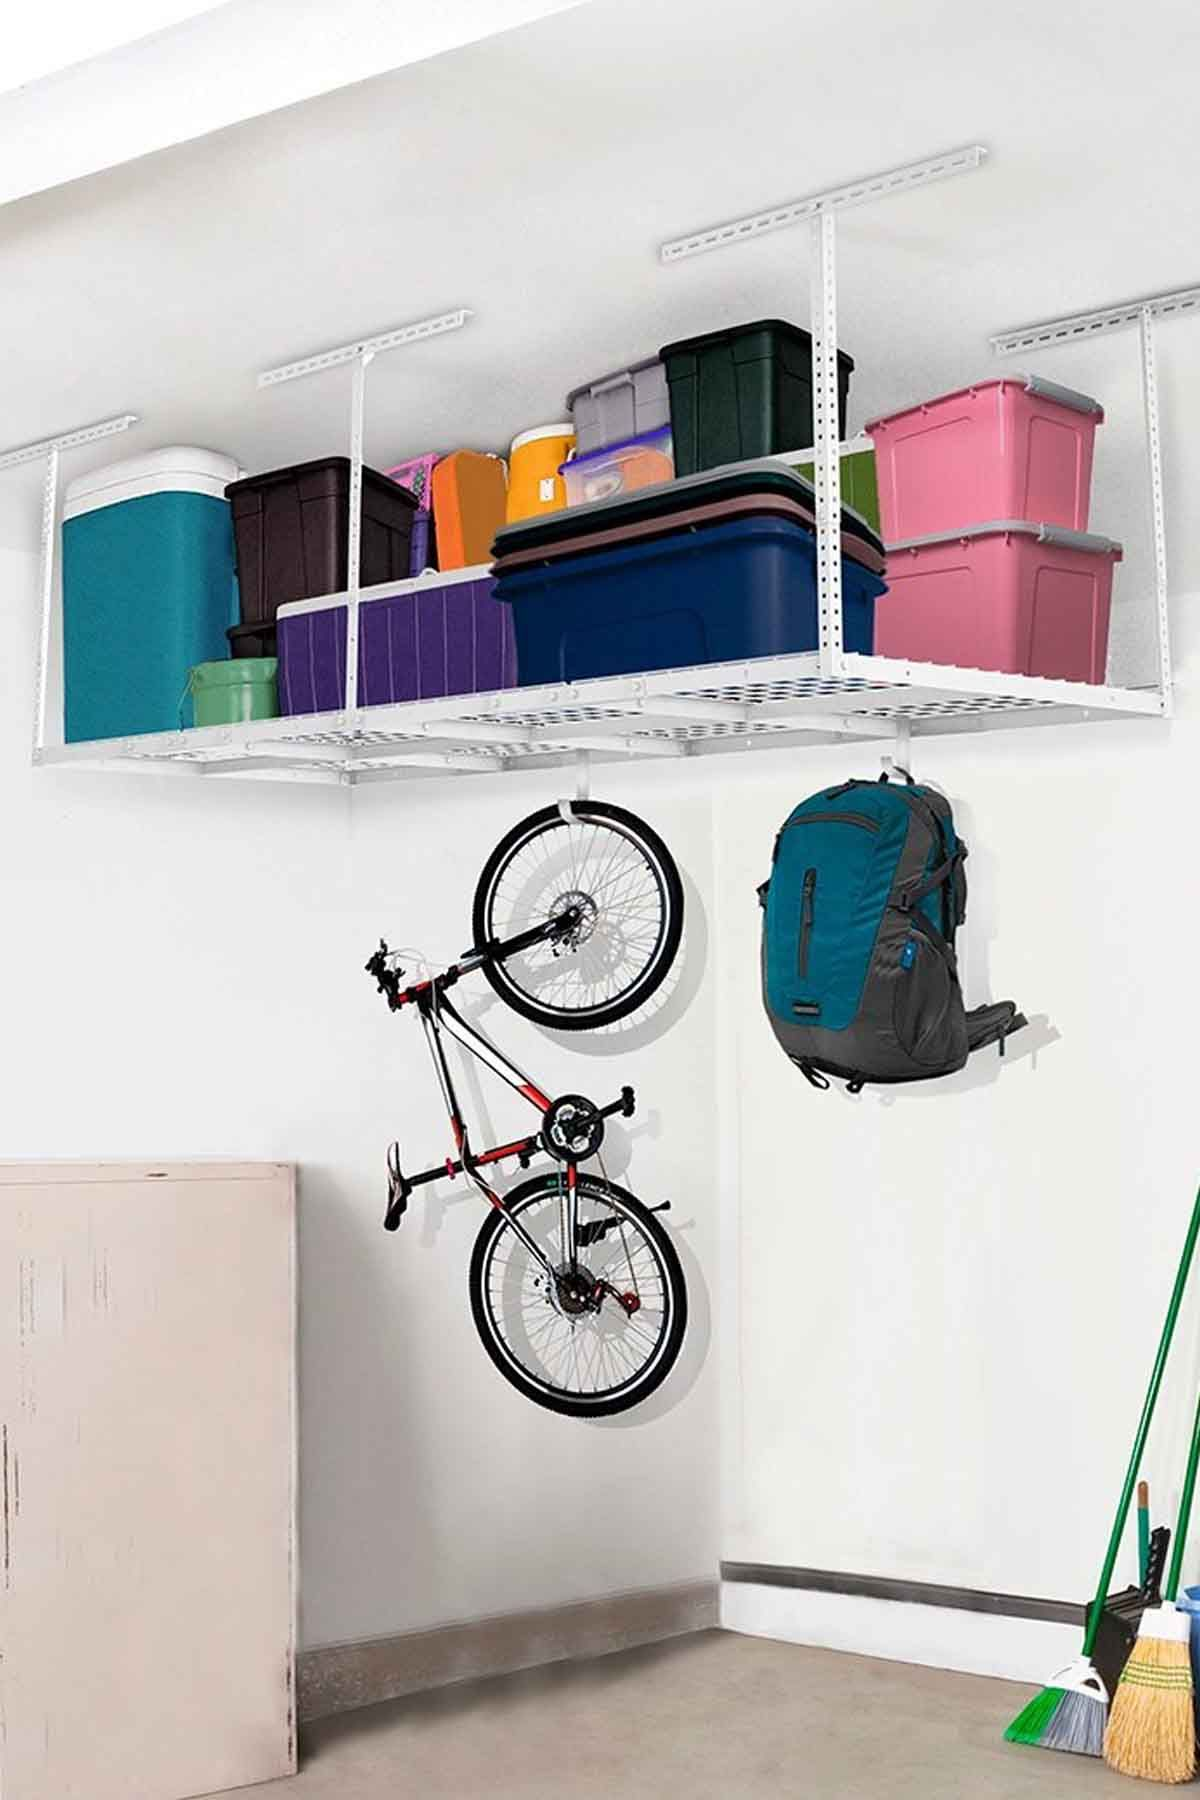 24 Simple Ways to Keep Your Garage Clean | Home Organization Ideas ...